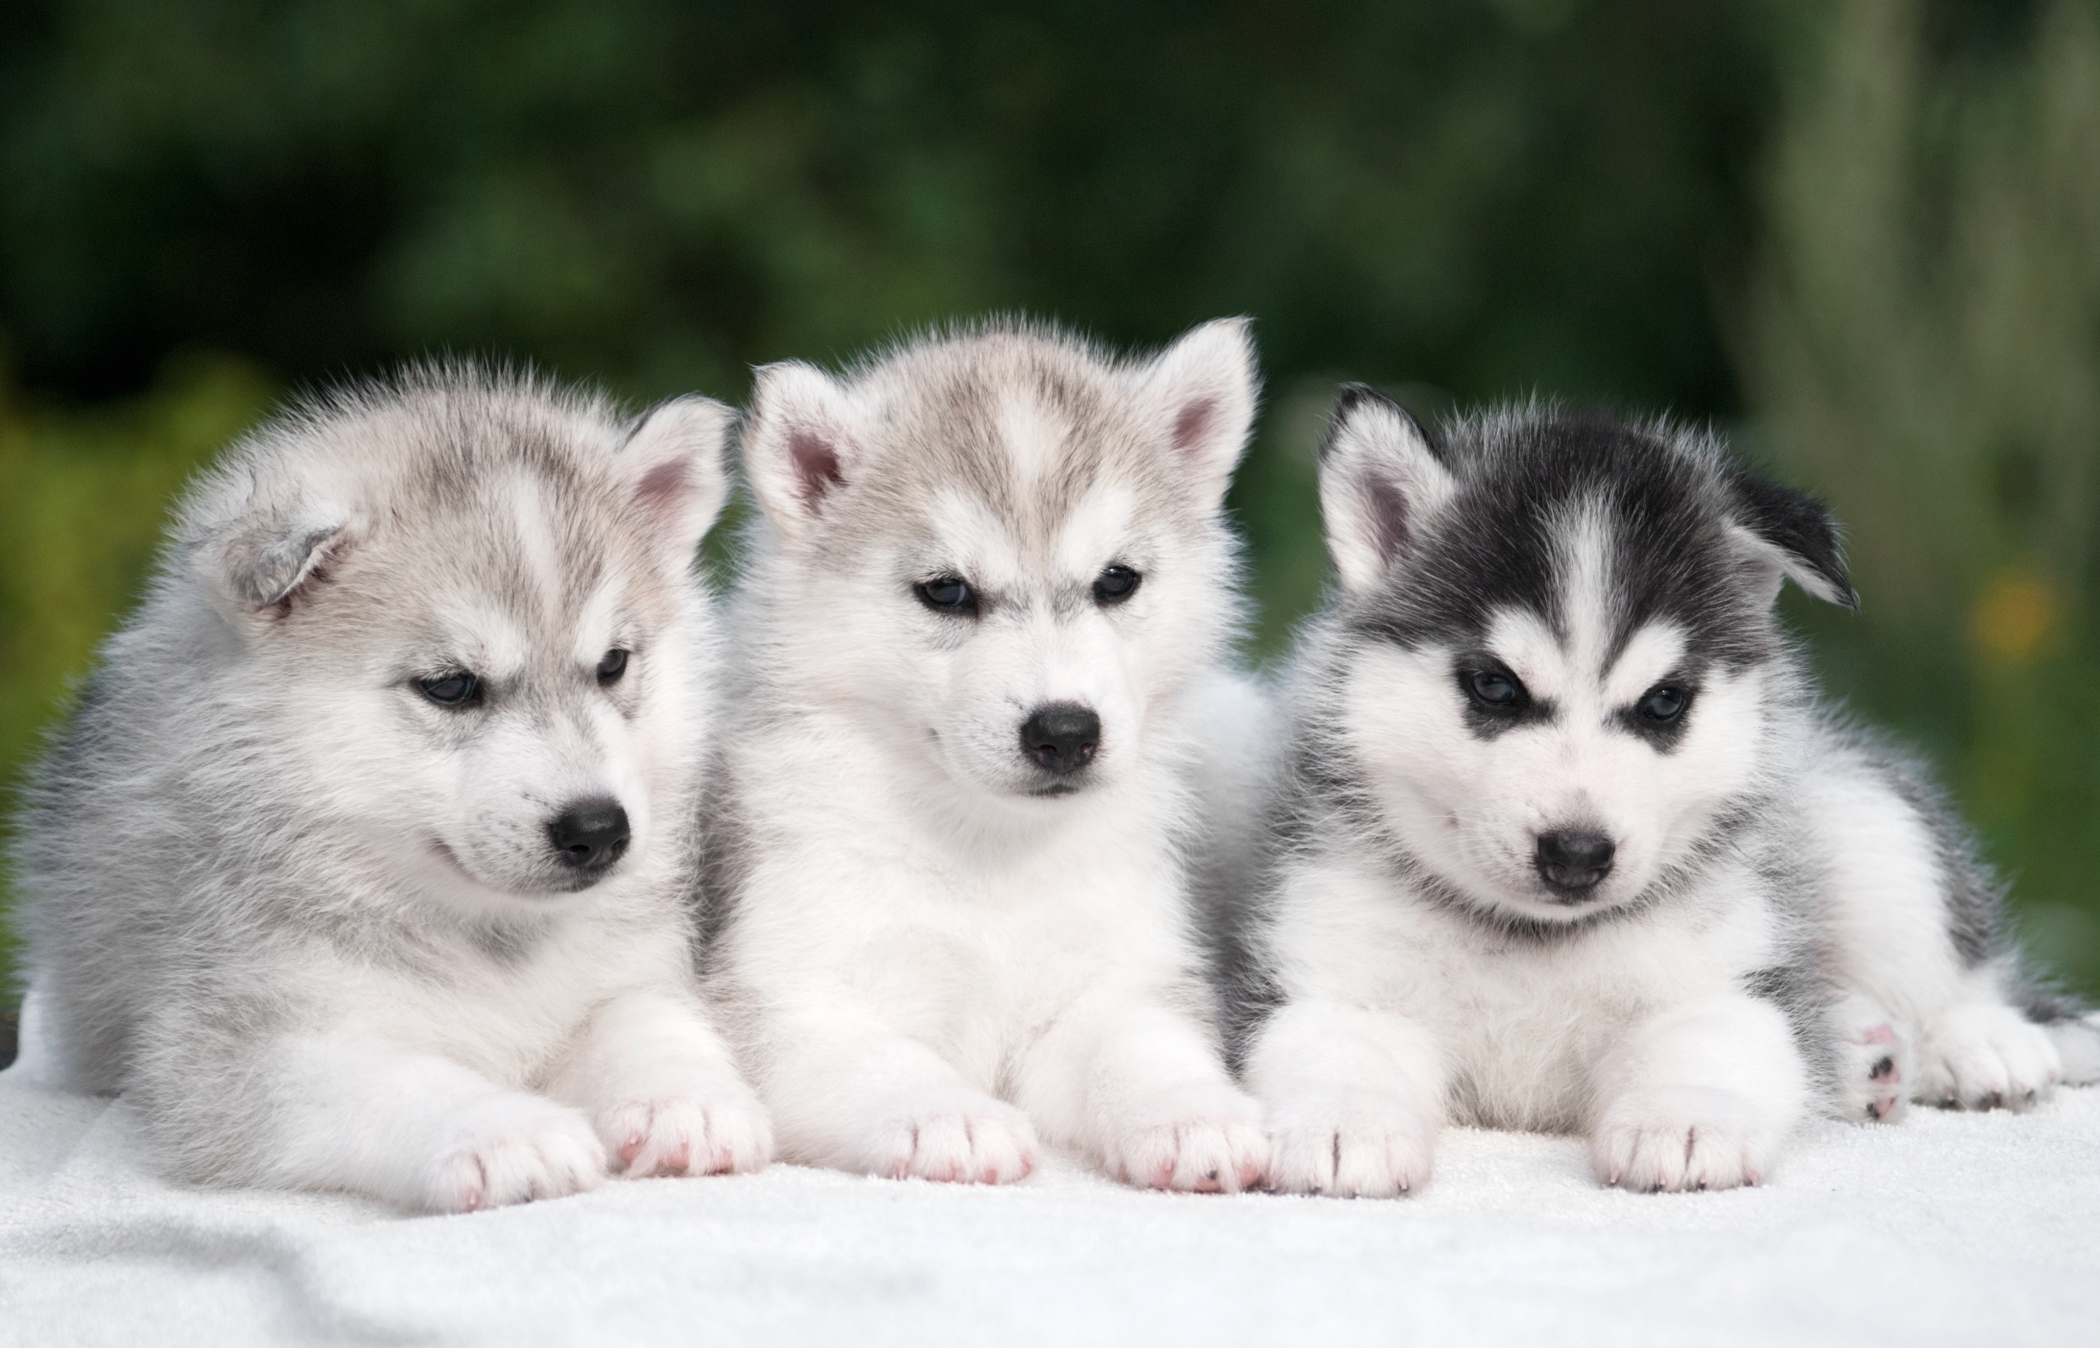 Perros Husky Siberiano Fondos De Pantalla Hd De Animales 2: Three Husky Puppies HD Wallpaper